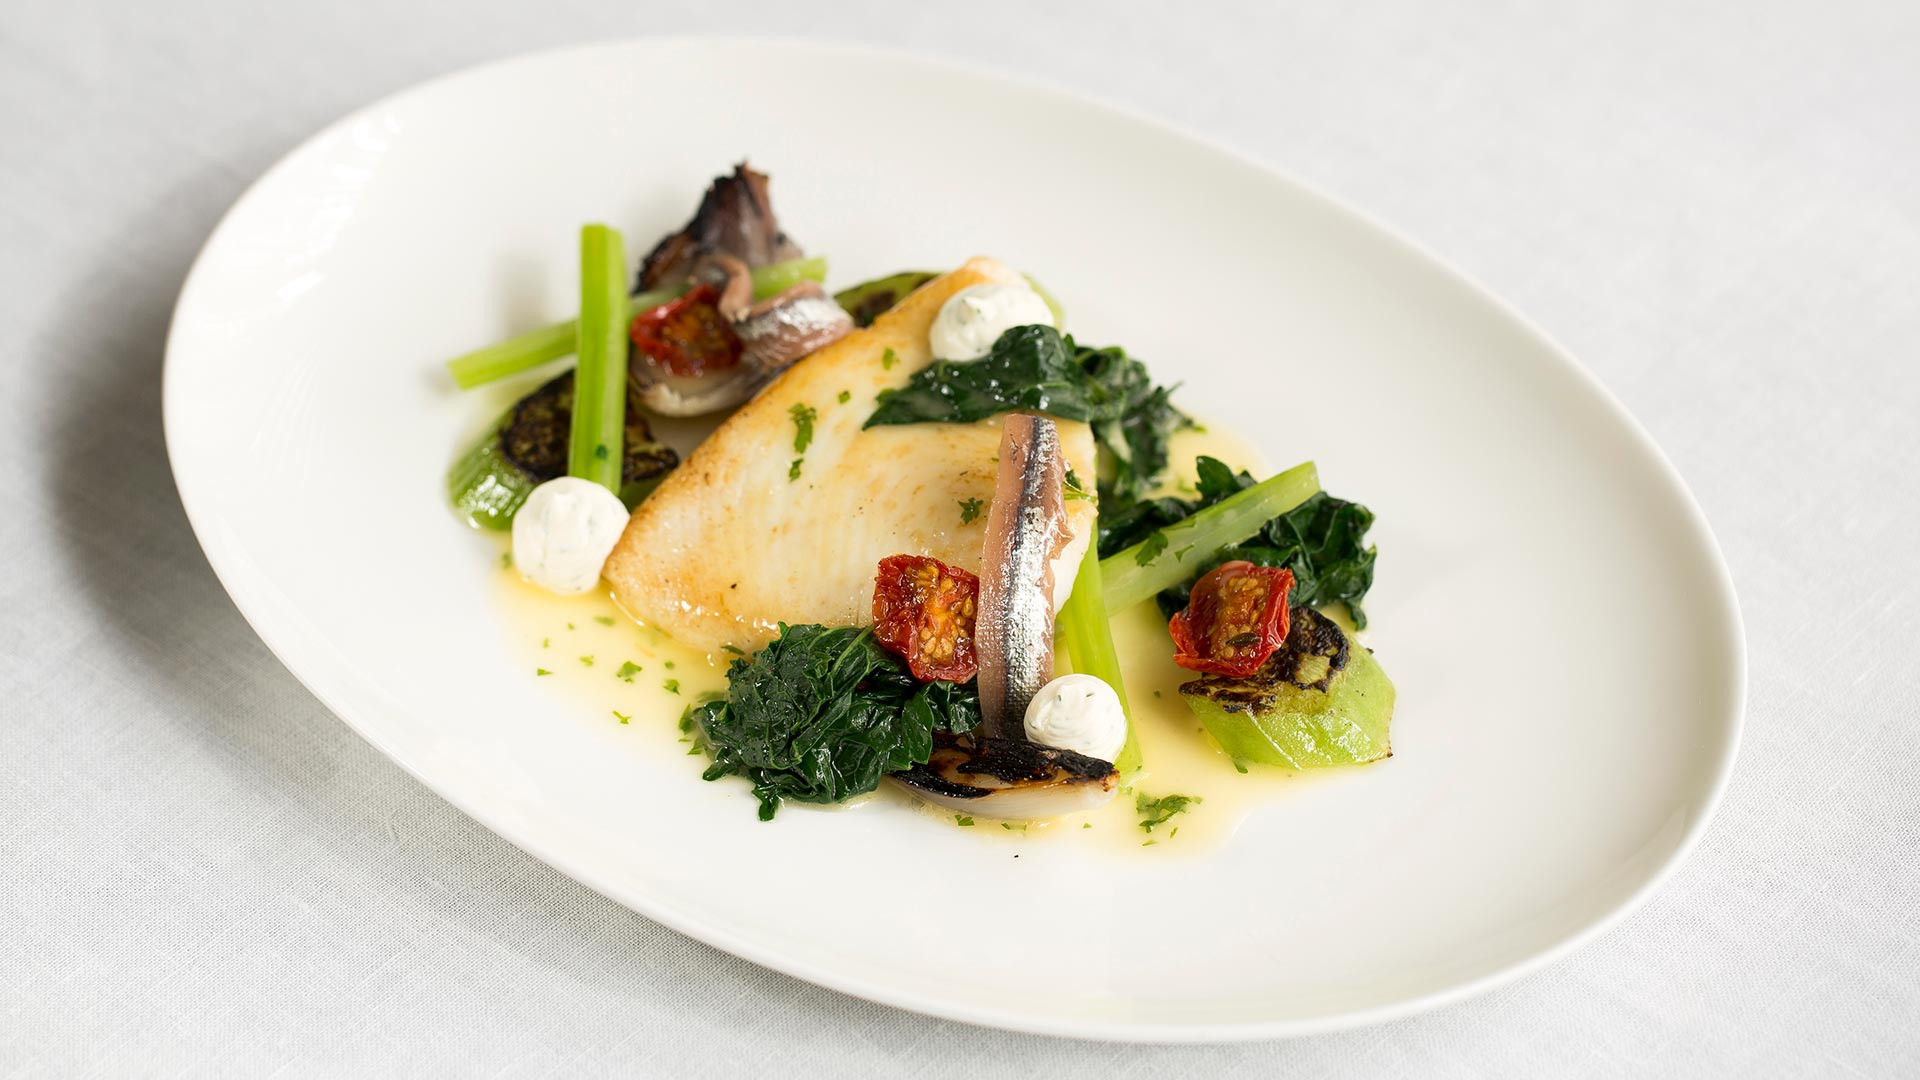 Halibut, cime di rapa (broccoli raab), anchovy, cucumber and dill créme fraîche from Michelin-starred Murano